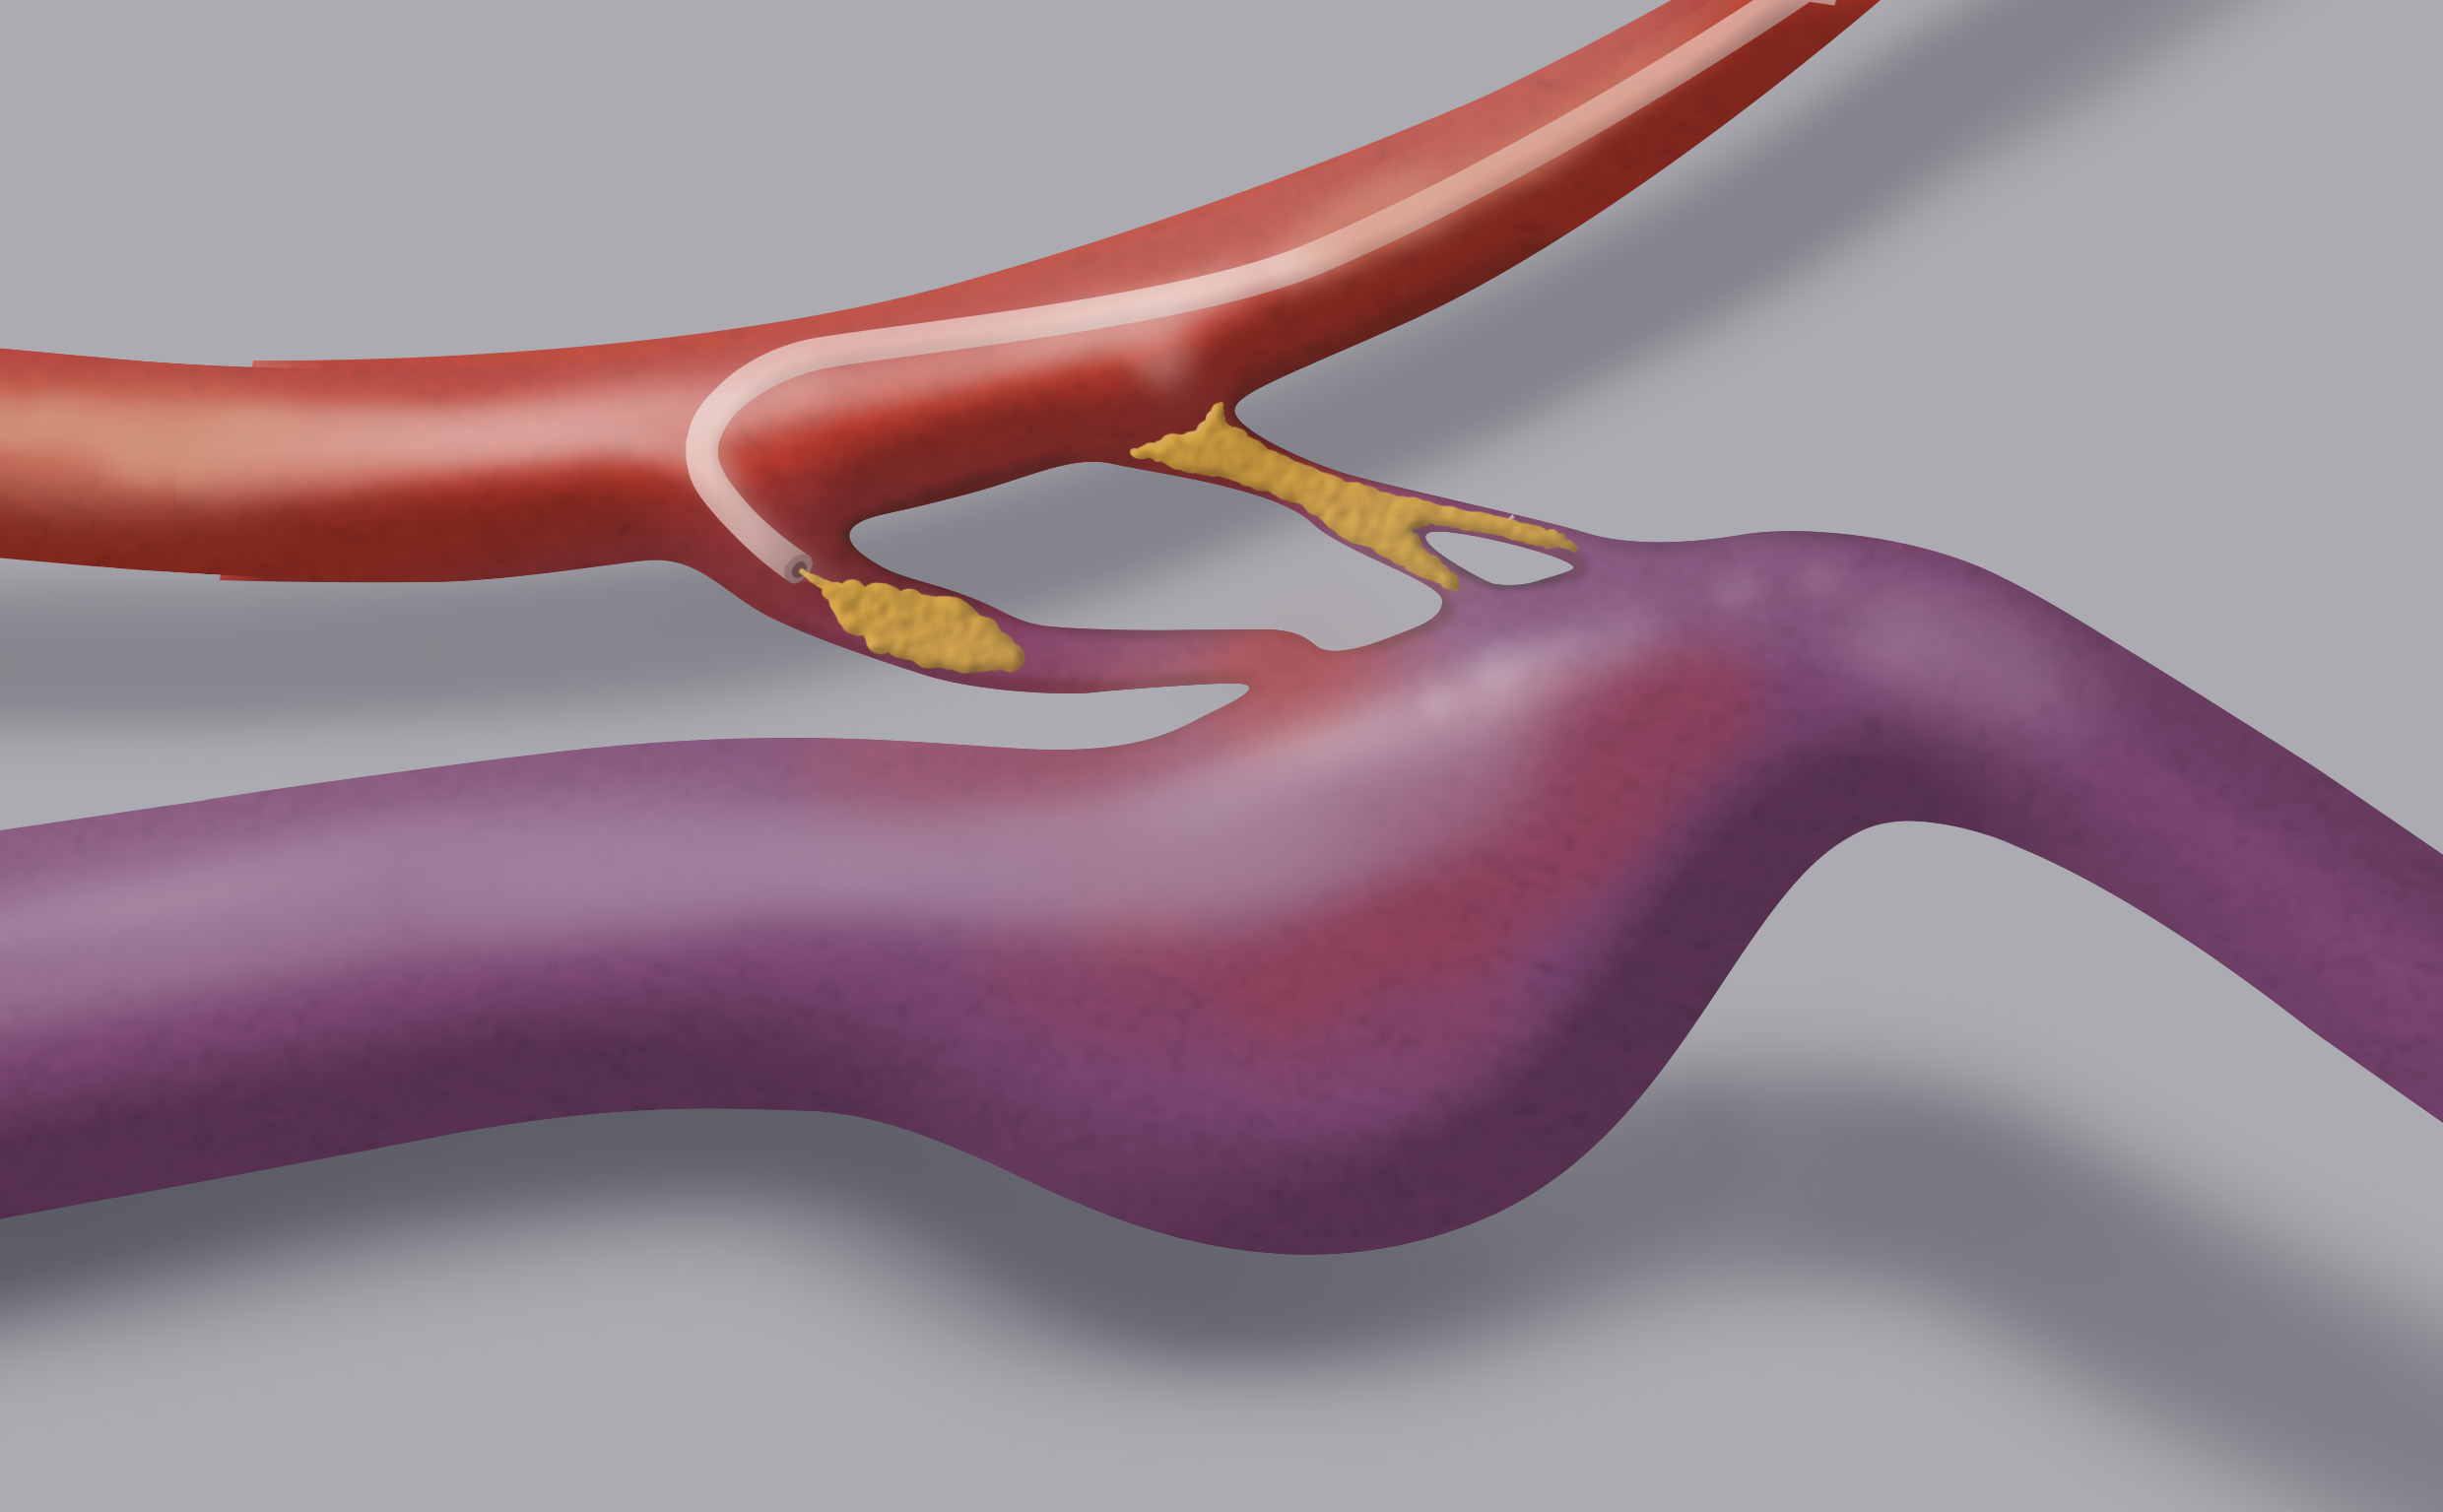 The endovascular treatment has the aim of reaching the point of the fistula with a microcatheter and  occluding it by injecting a glue.